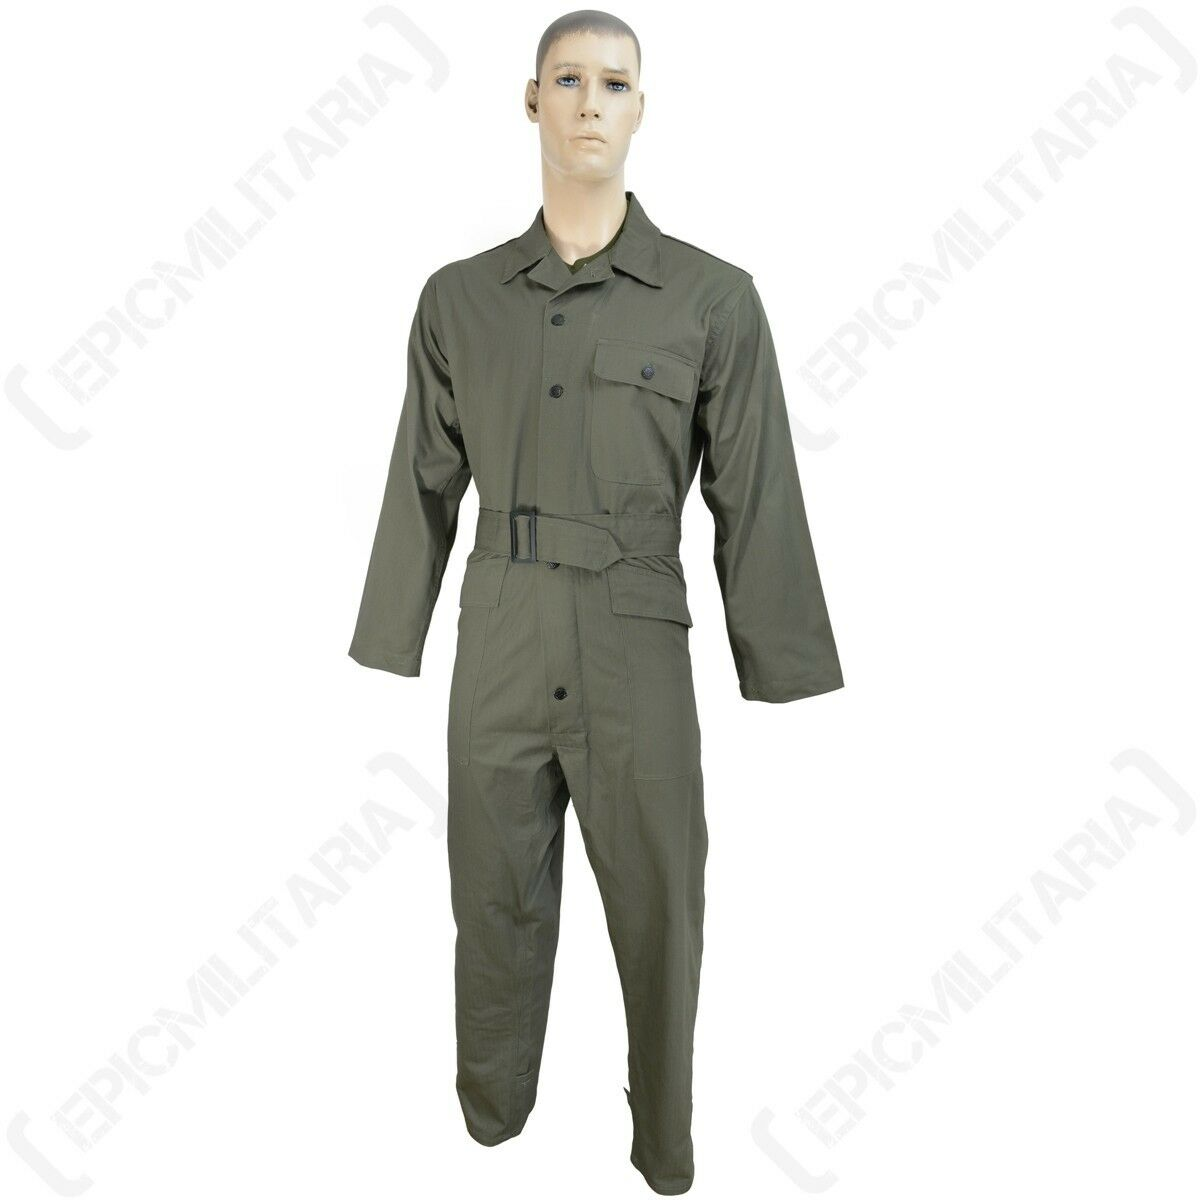 Repro WW2 American Army HBT Tanker Suit - All Overalls Größes WWII Kombi Overalls All Trousers ed1449